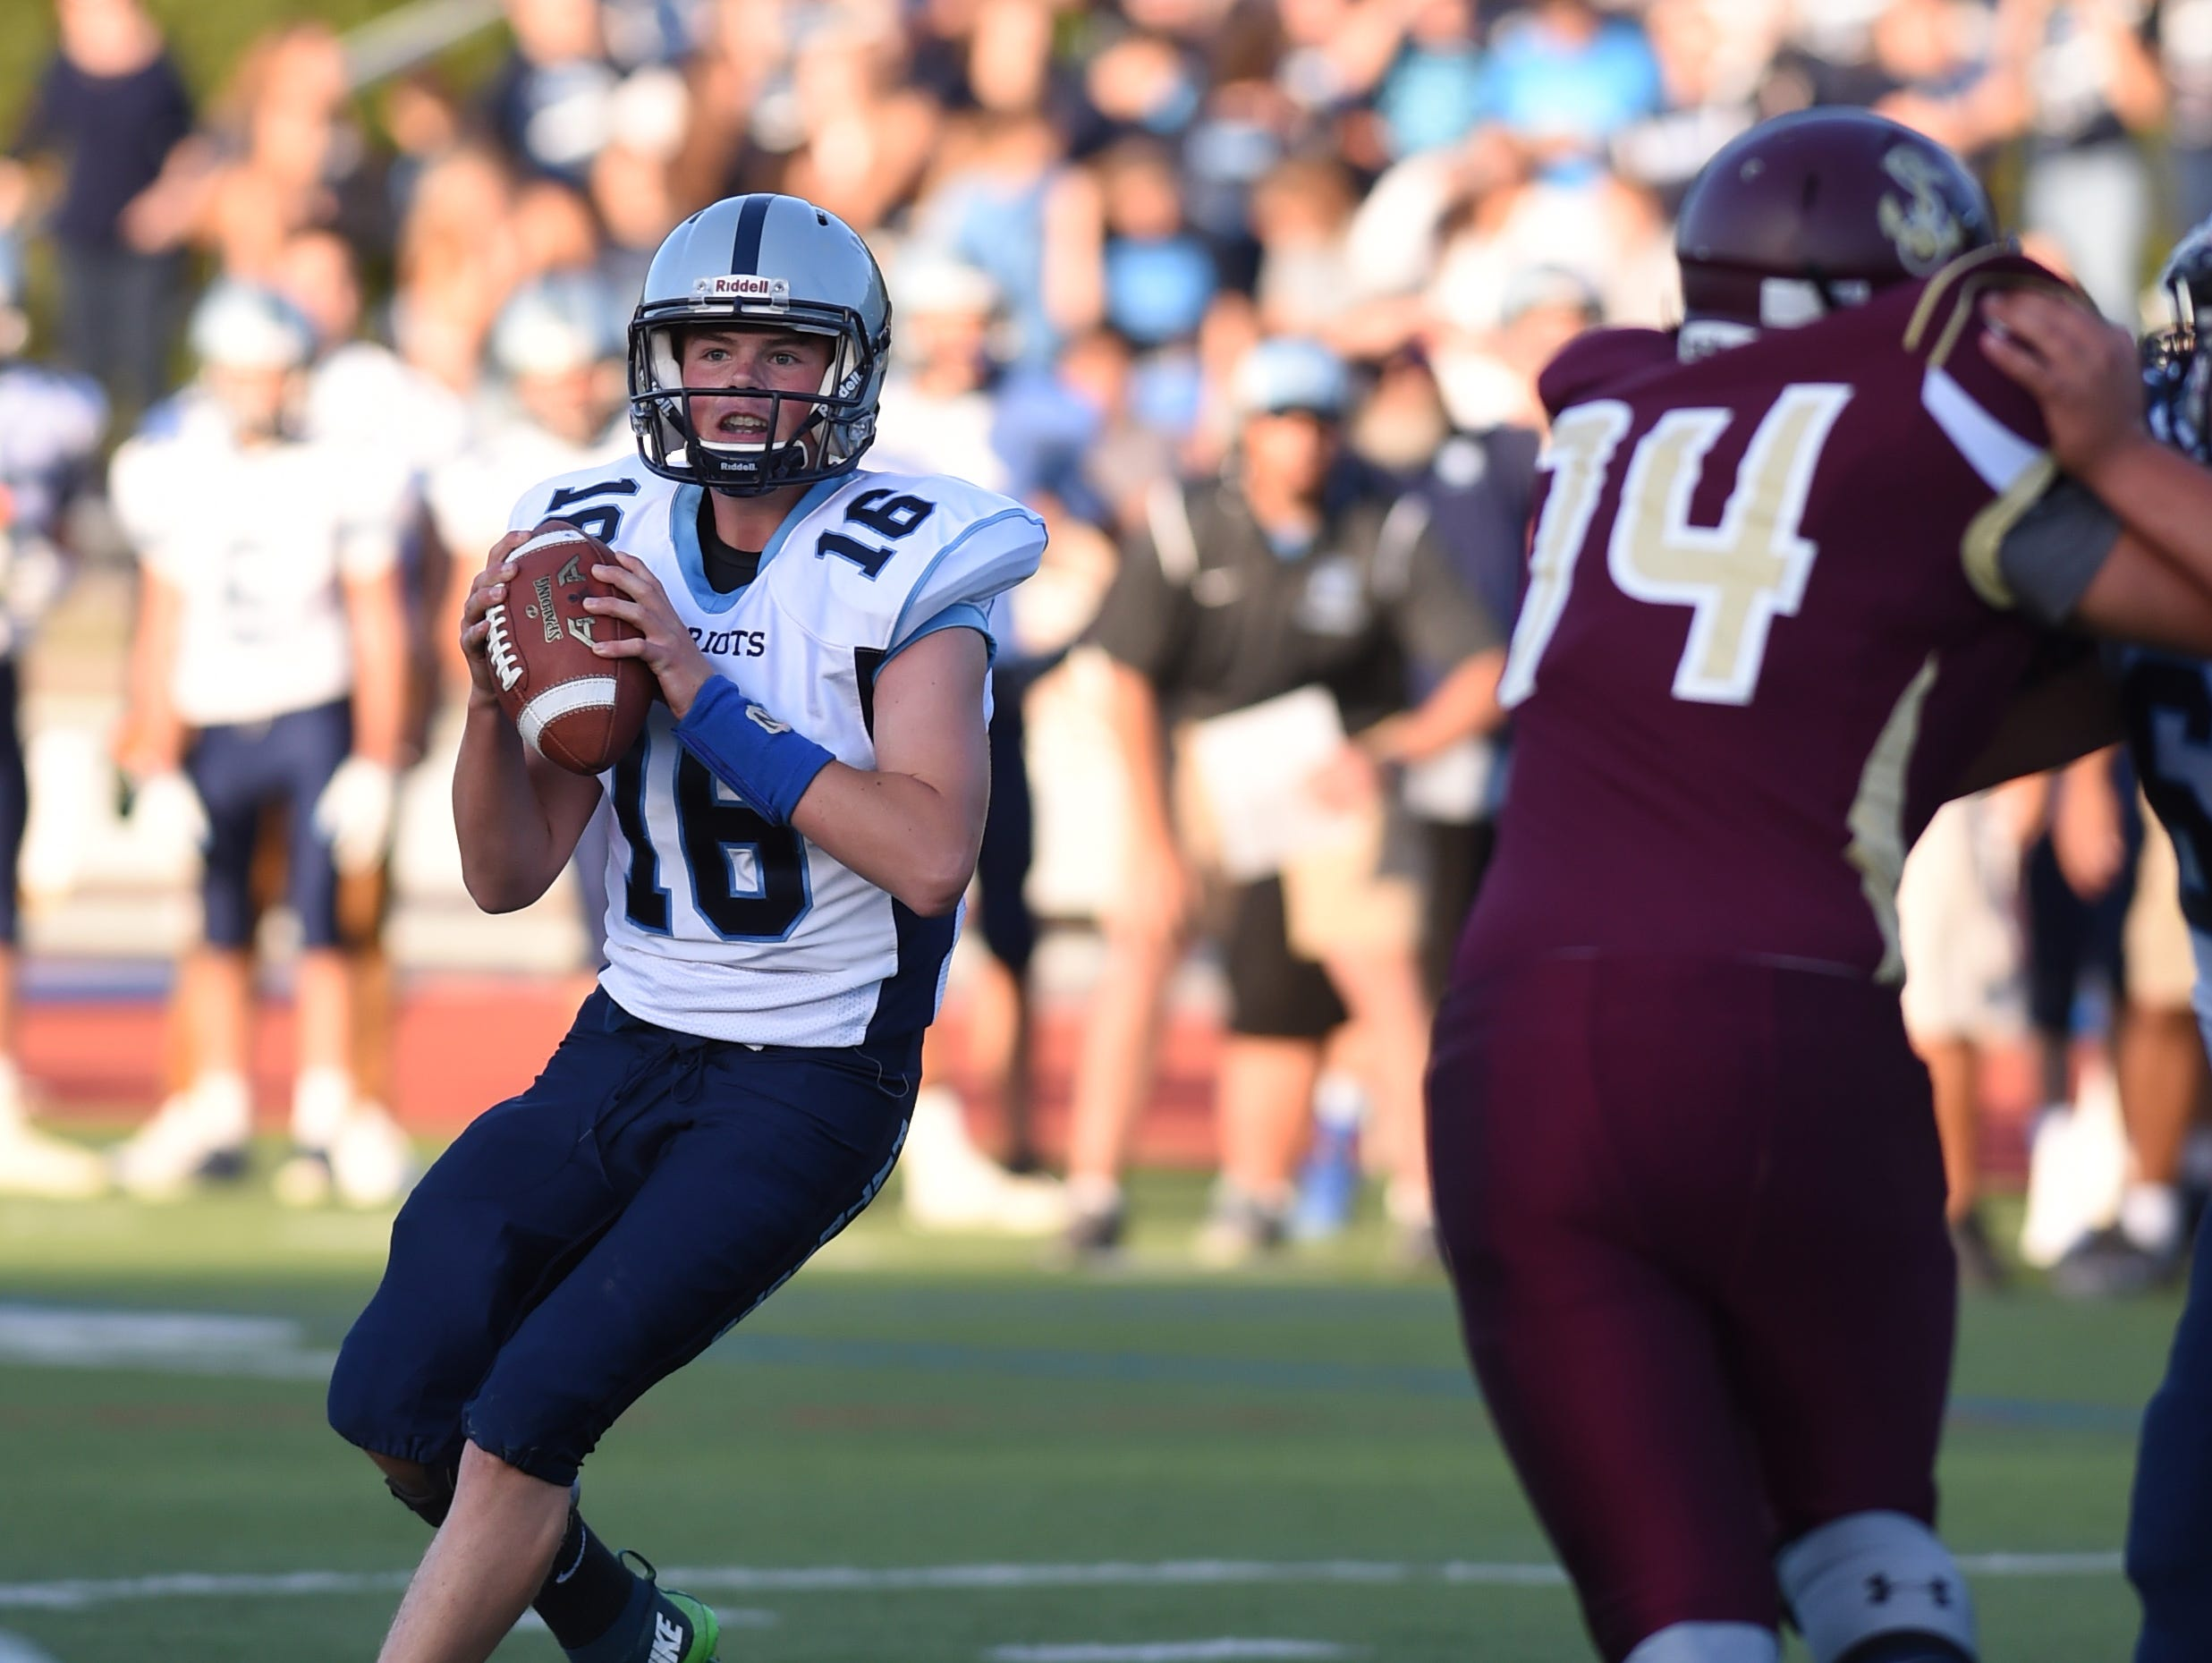 John Jay's Richie Eletto looks to pass the ball during Friday's game versus Arlington.